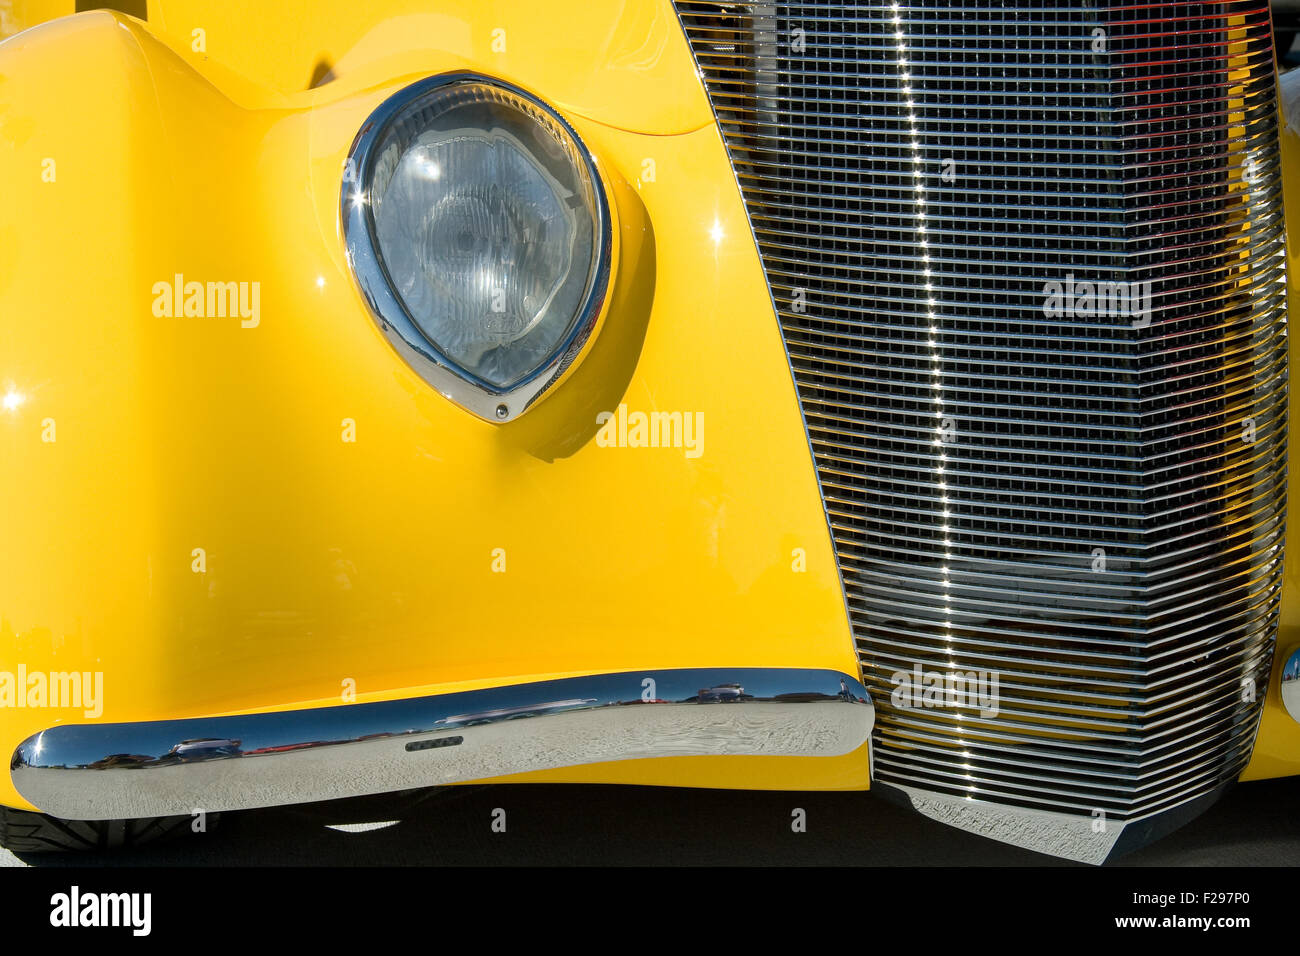 Old and stylish yellow collectible ancient car - Stock Image